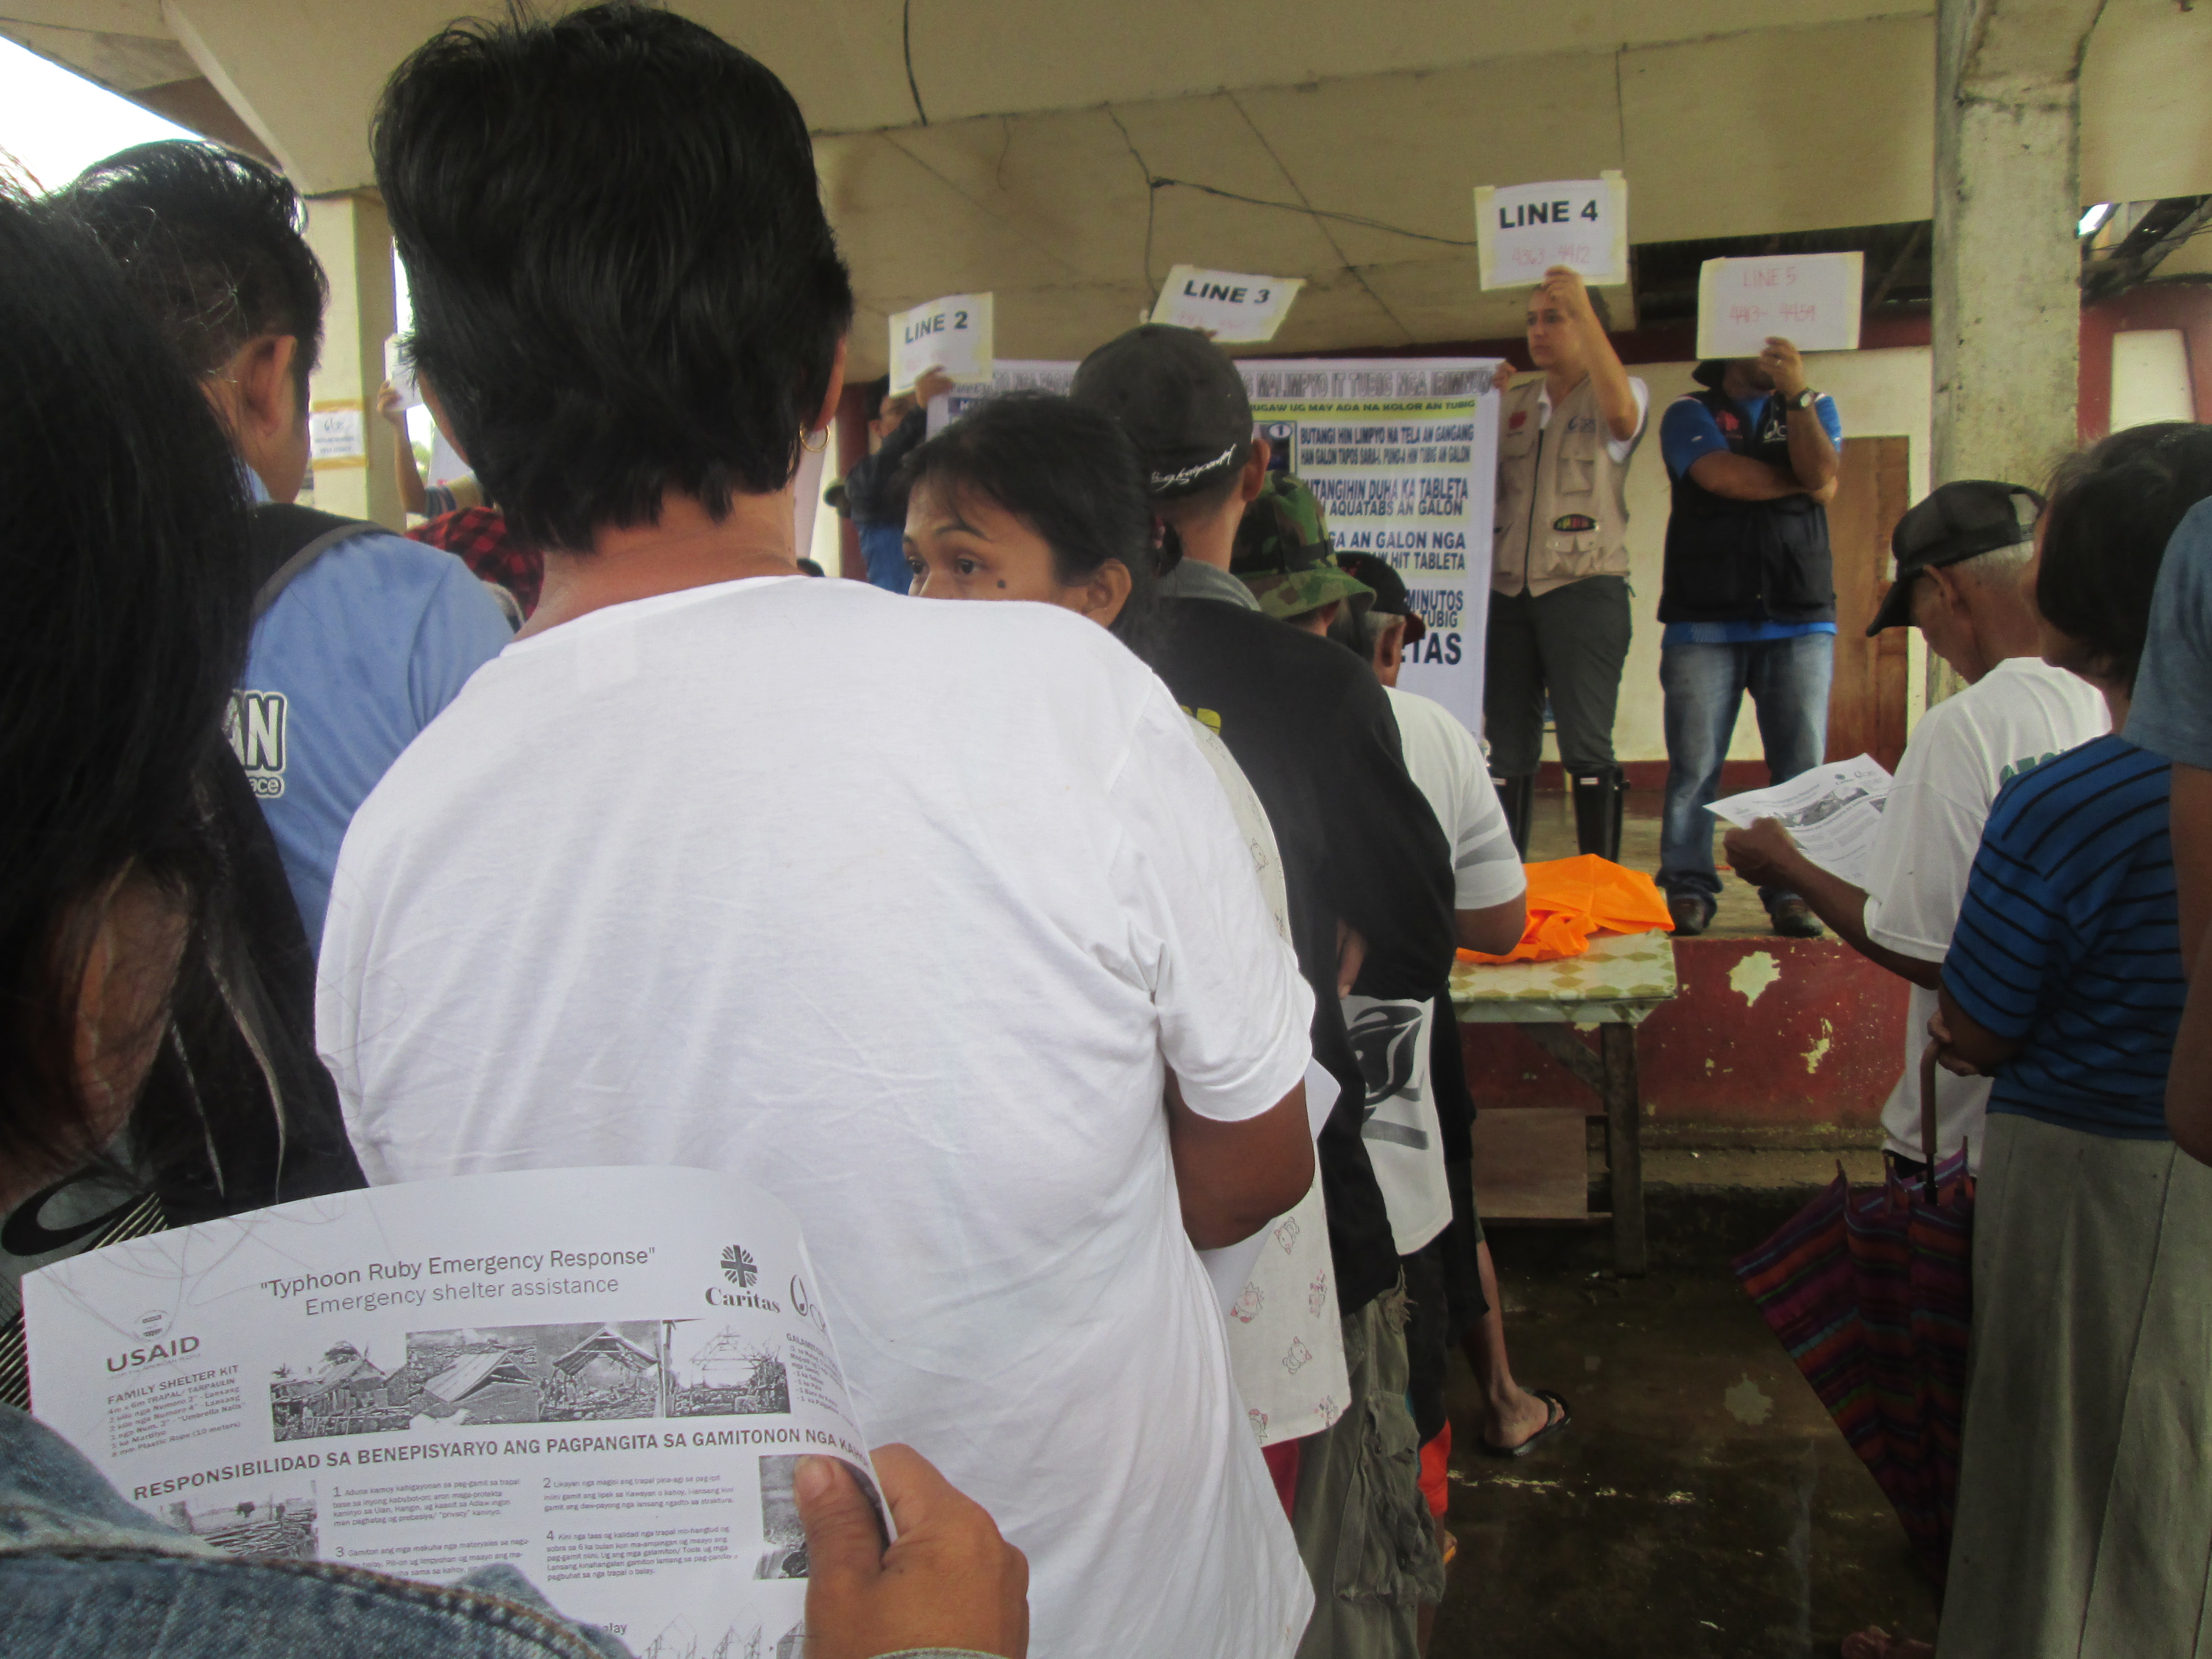 Philippines fellow Julia Leis supported the Typhoon Hagupit response in Eastern Samar, assisting with distributions of shelter; water, sanitation and hygiene, and household kits.